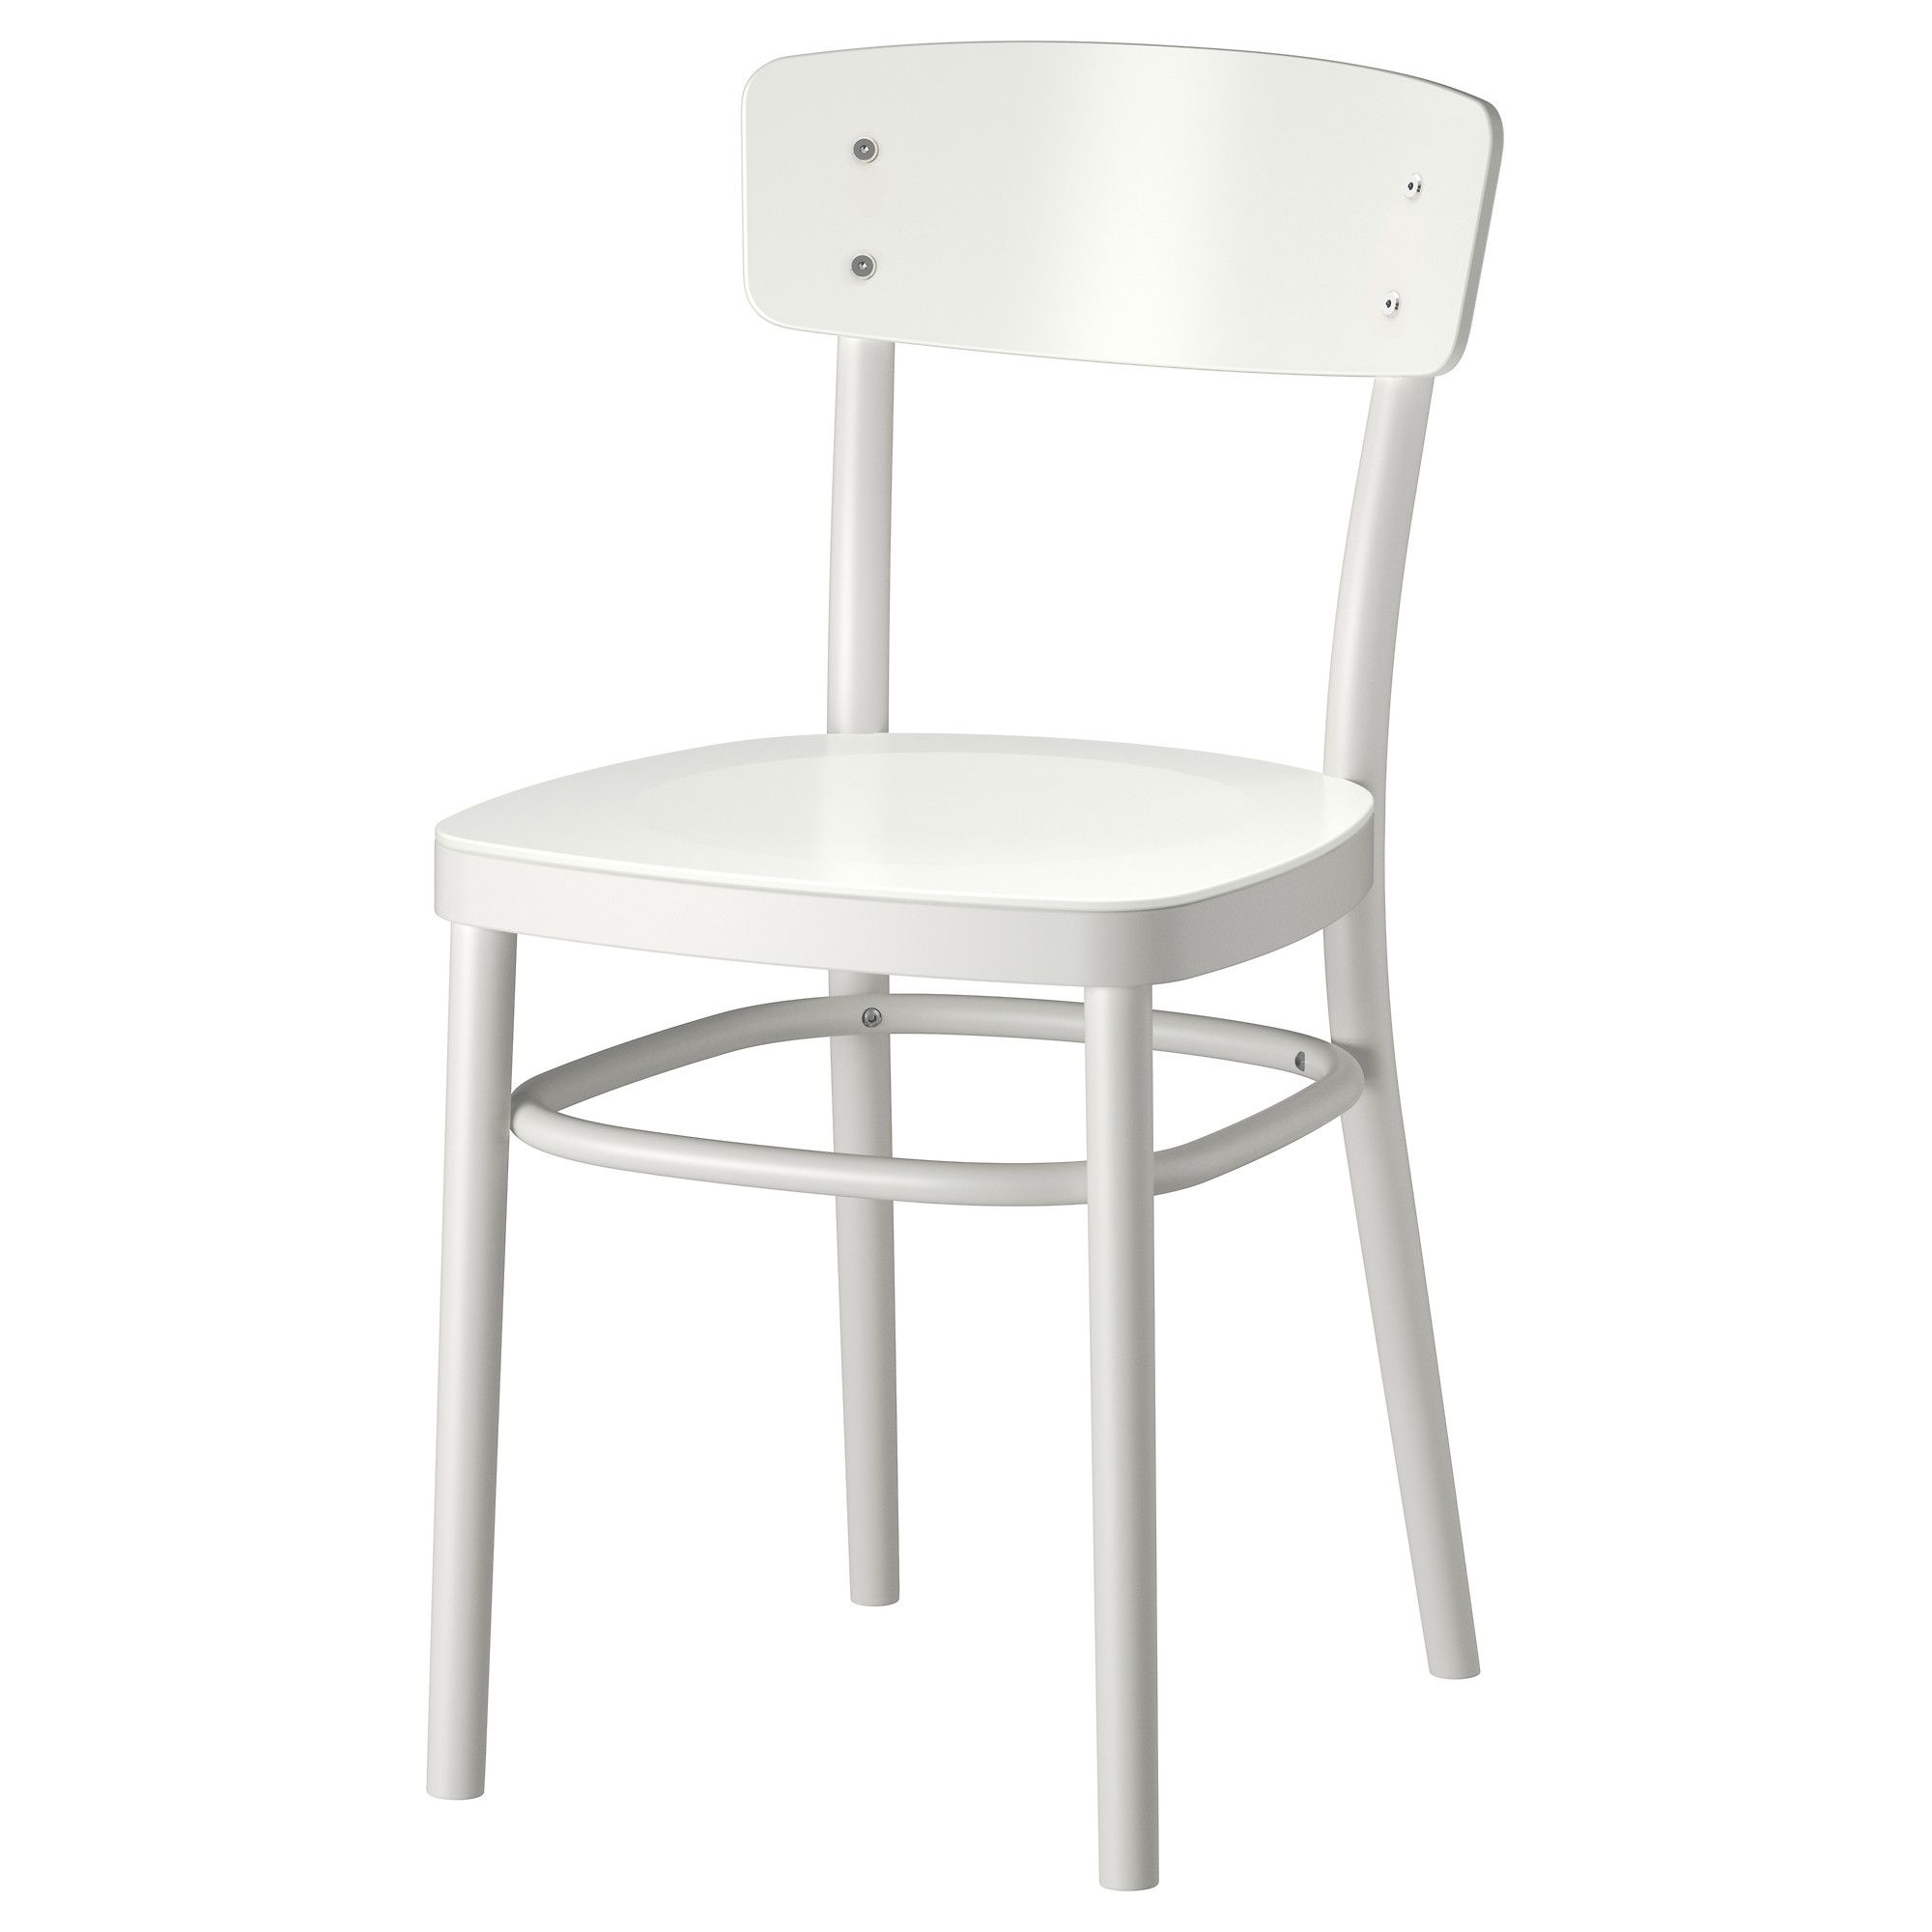 Idolf Chair Black Ikea Ikea Dining Chair Dining Chairs Ikea